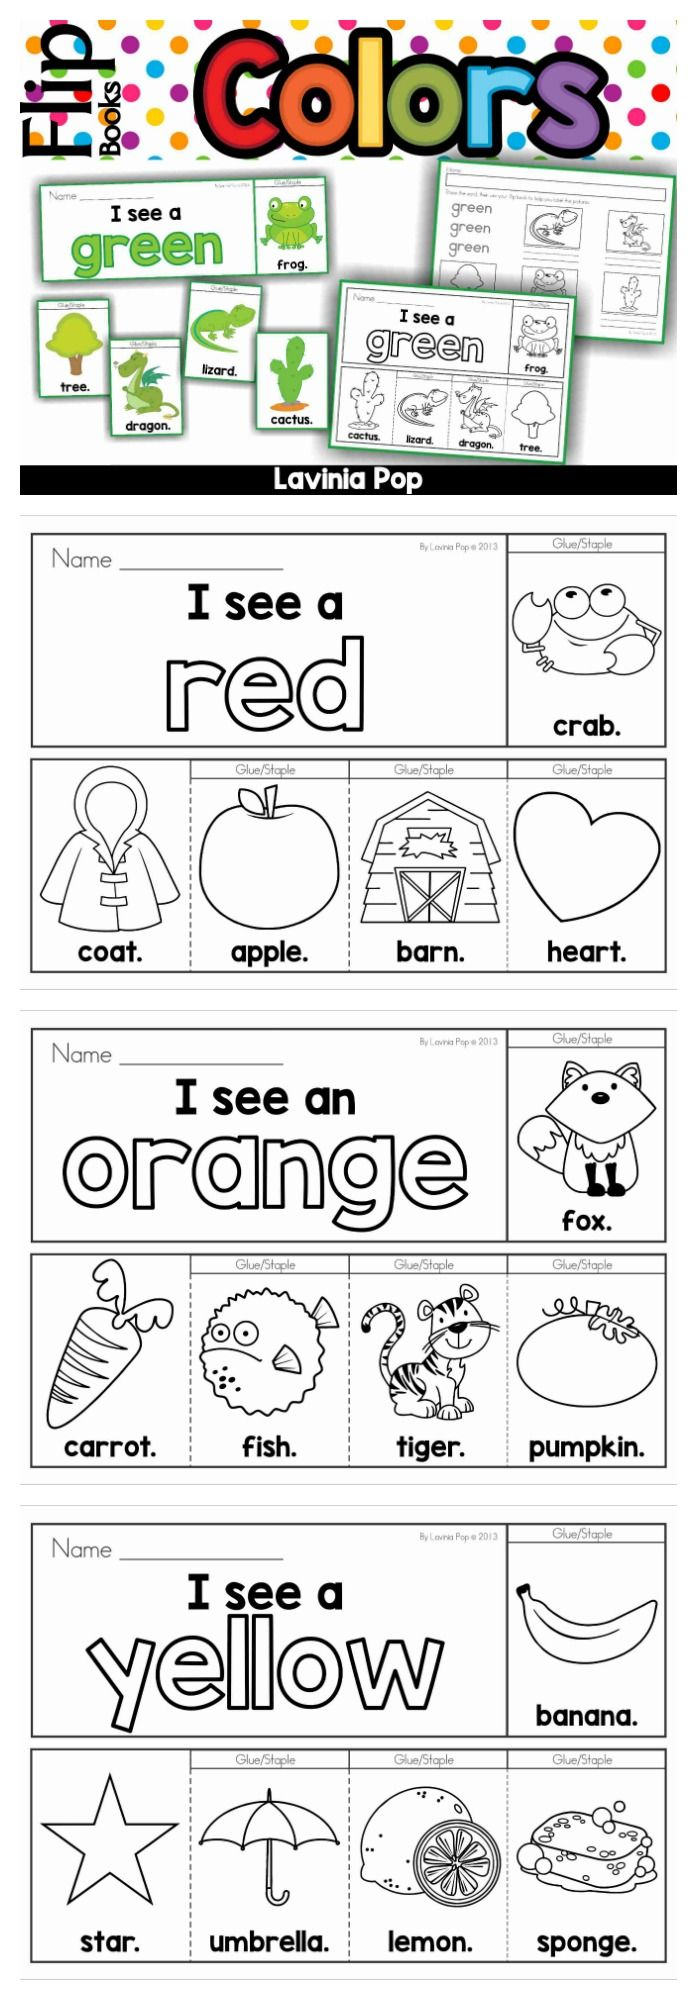 Color wheel worksheets for elementary - Color Flip Books In Color And Black White A Recording Page Is Also Included